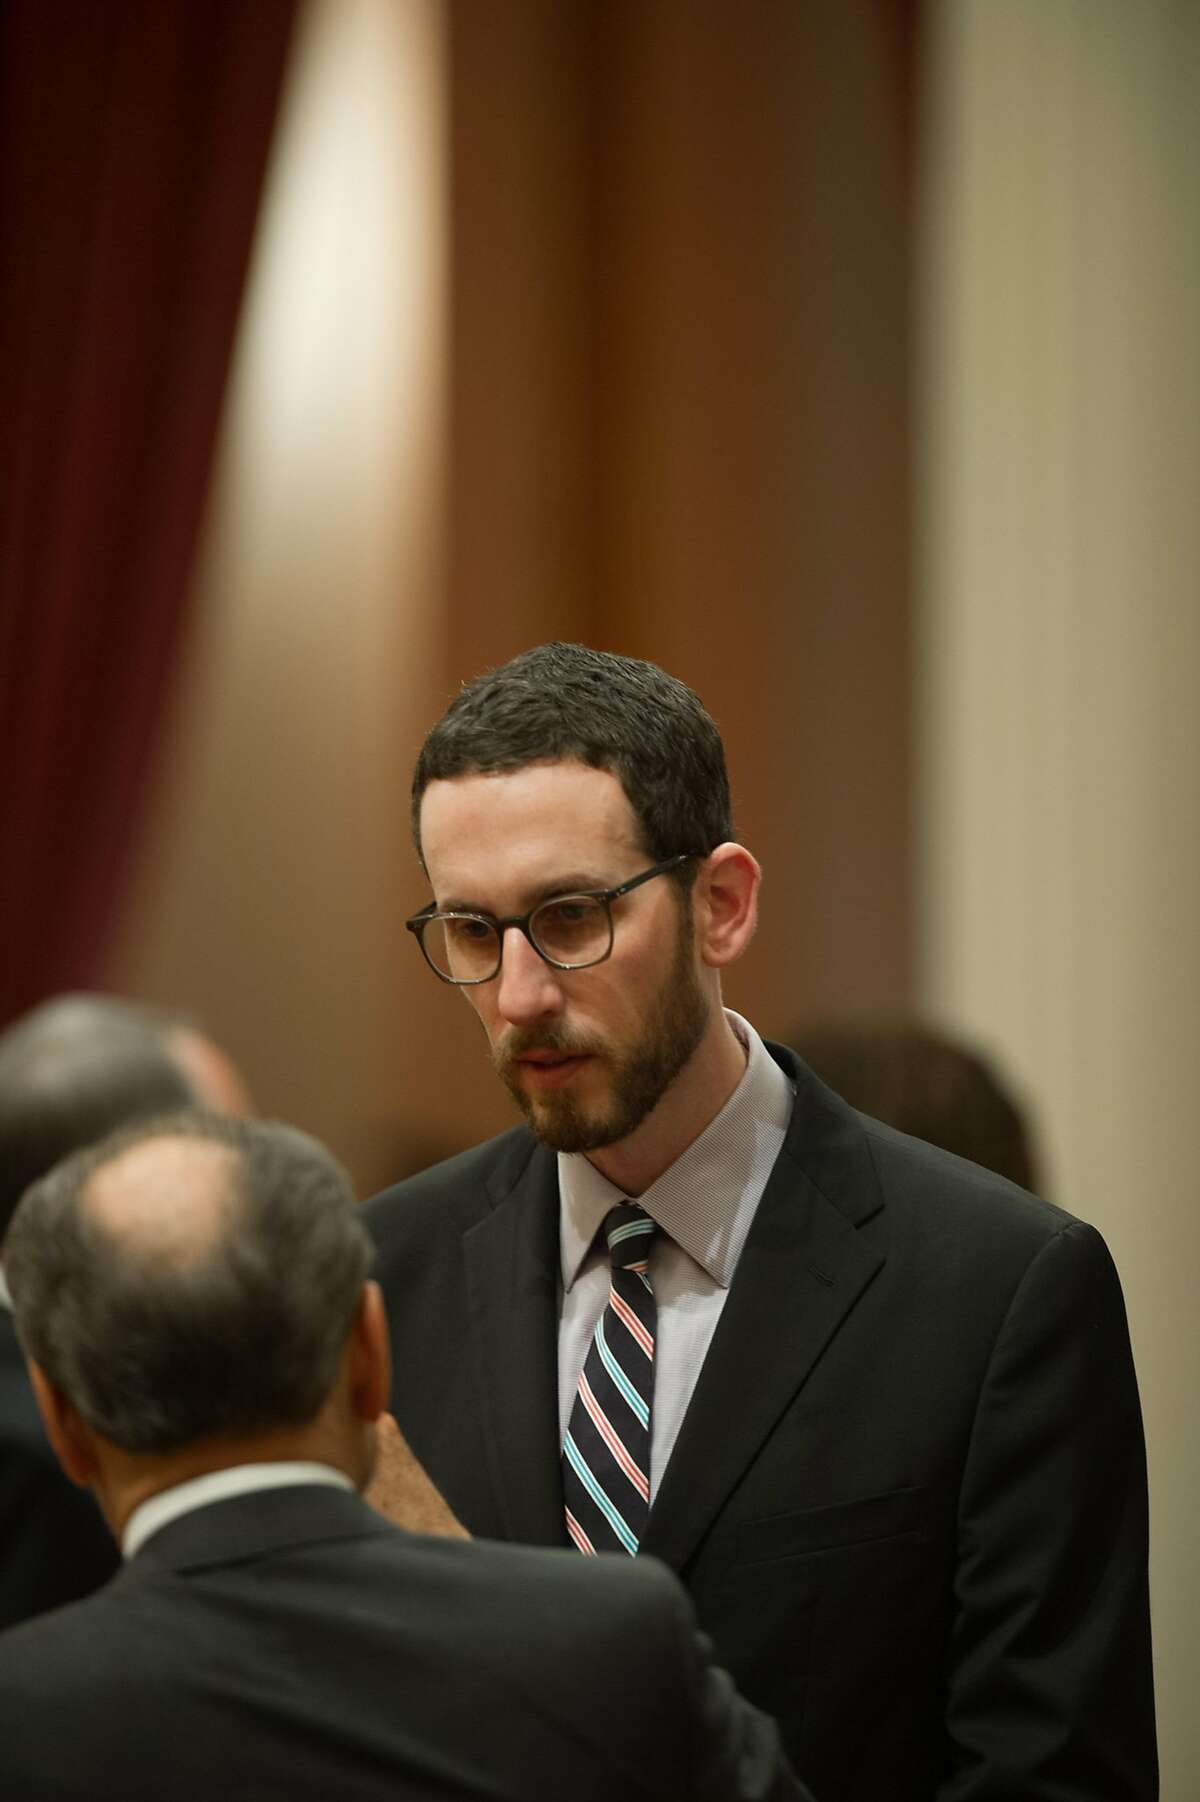 SB384 by Sen. Scott Wiener, D-San Francisco, allows most sex offenders to petition beginning in 2021 to be removed from both the public and the police registries 10 to 20 years after they are released from prison, as long as they have not committed another serious or violent felony or sex crime.